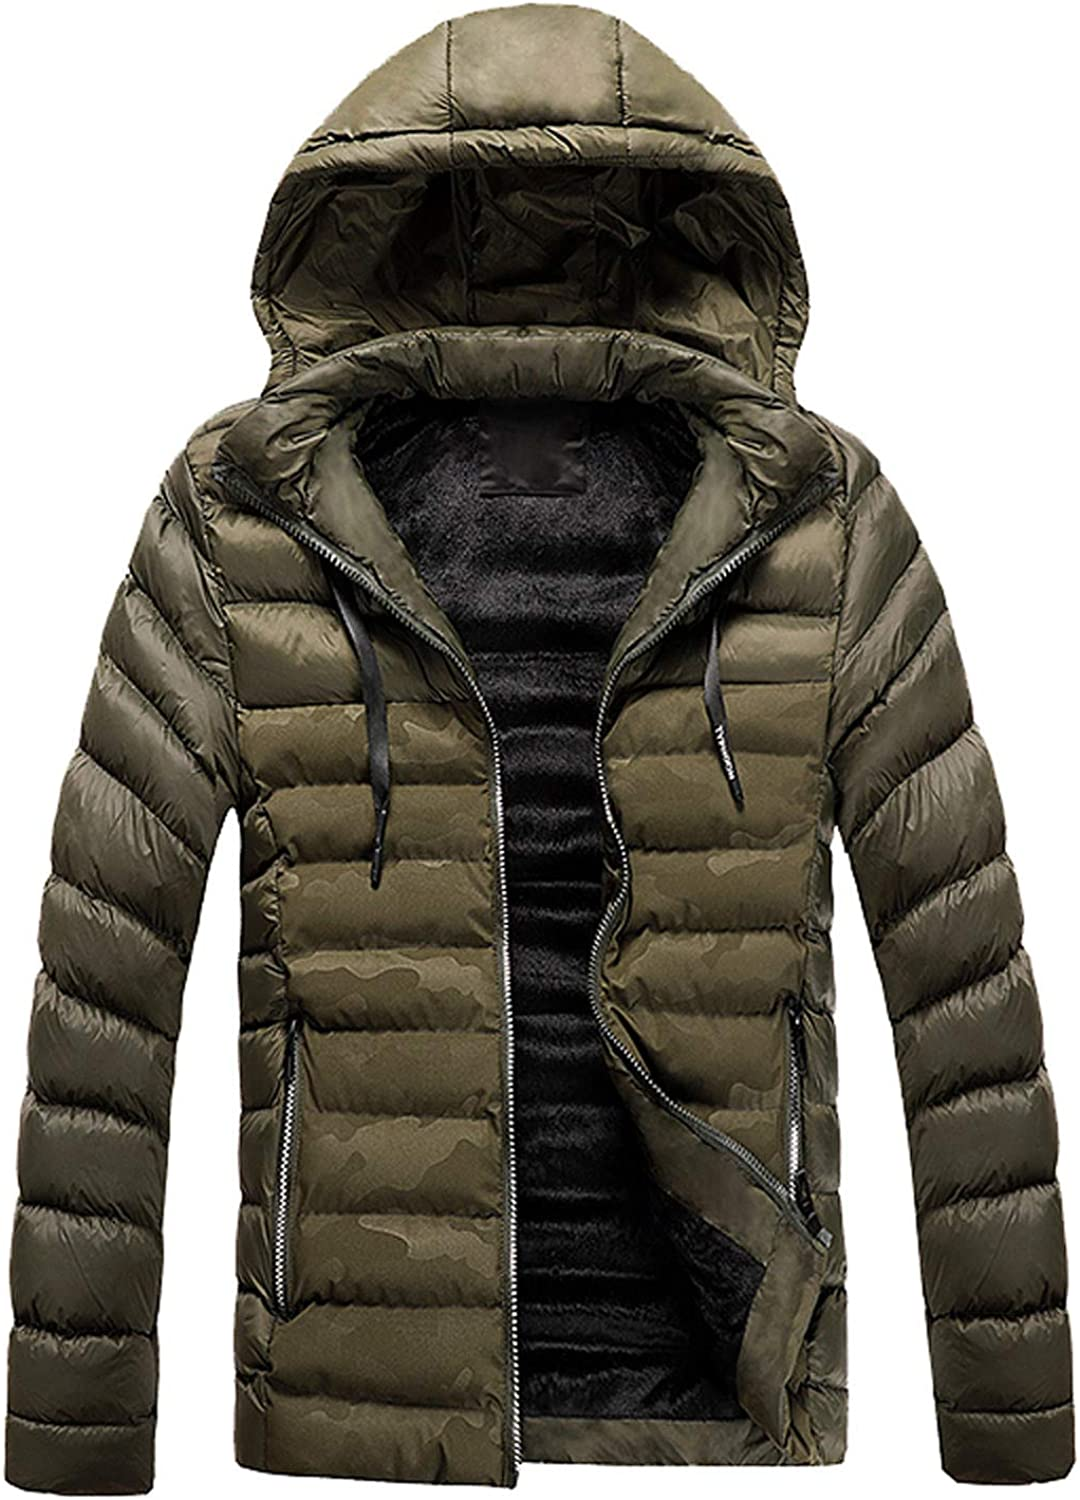 WUAI-Men Hooded Packable Down Jacket Lightweight Big and Tall Quilted Puffer Insulated Winter Coat Outerwear